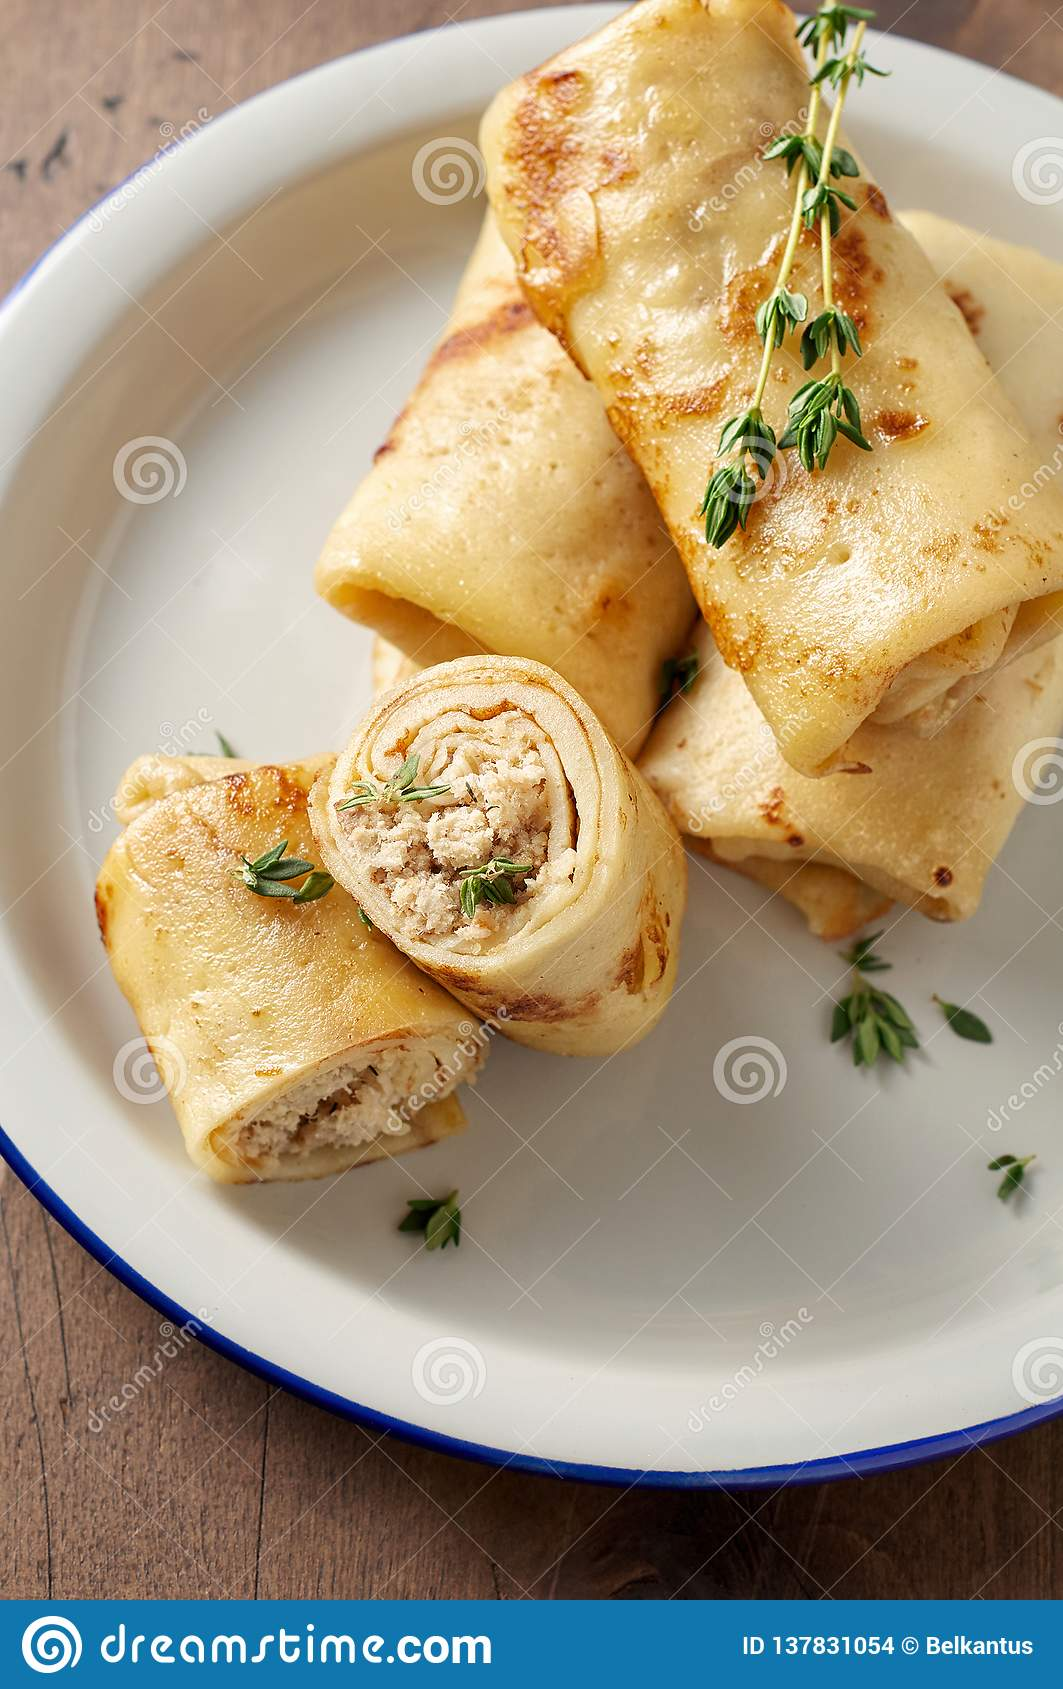 Savory crepe rolls with ground meat filling. Traditional Russian Shrovetide festival meal